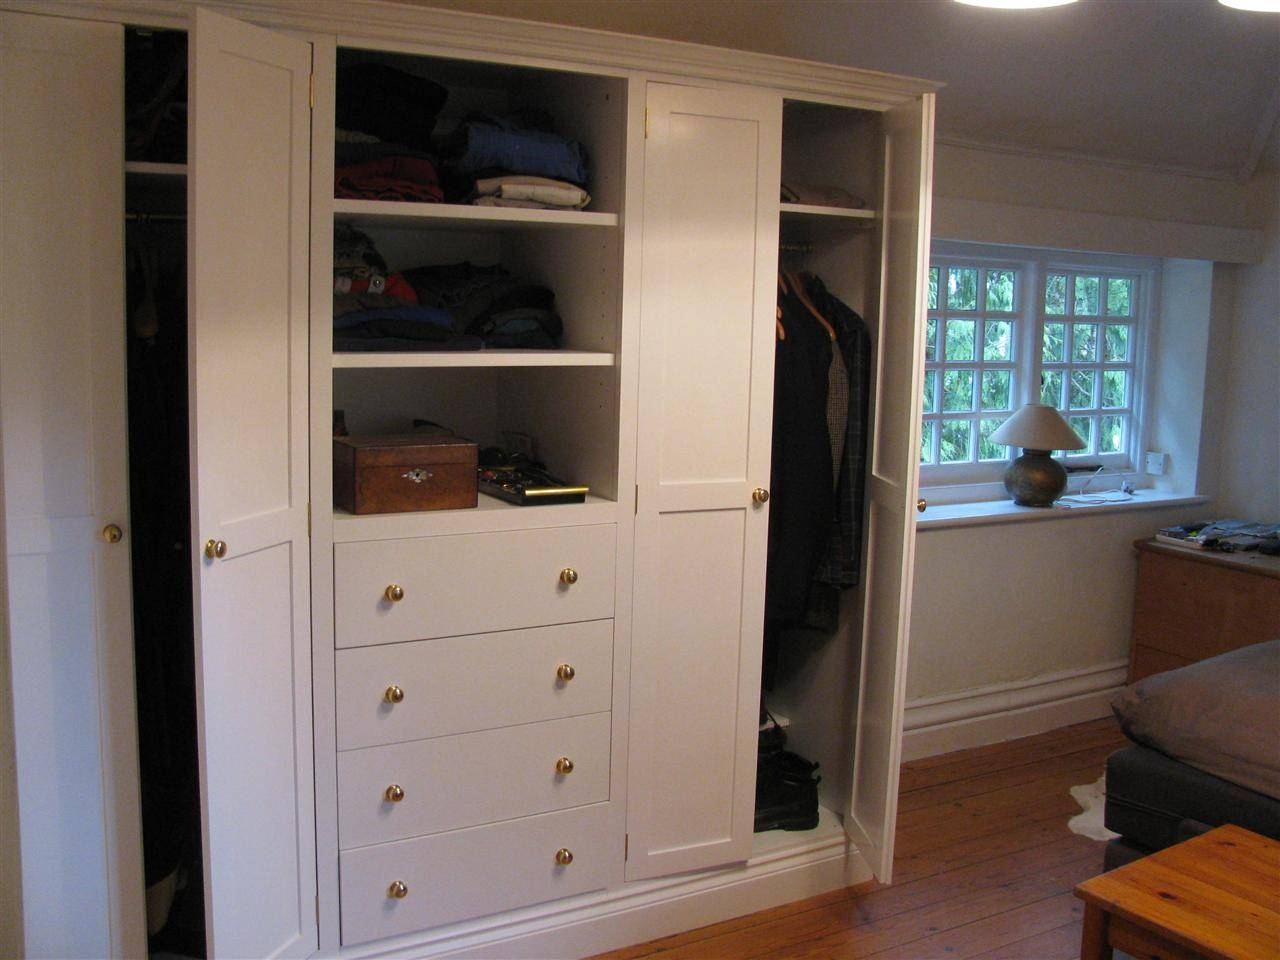 Wardrobes Intended For Wardrobe With Drawers And Shelves (View 7 of 30)